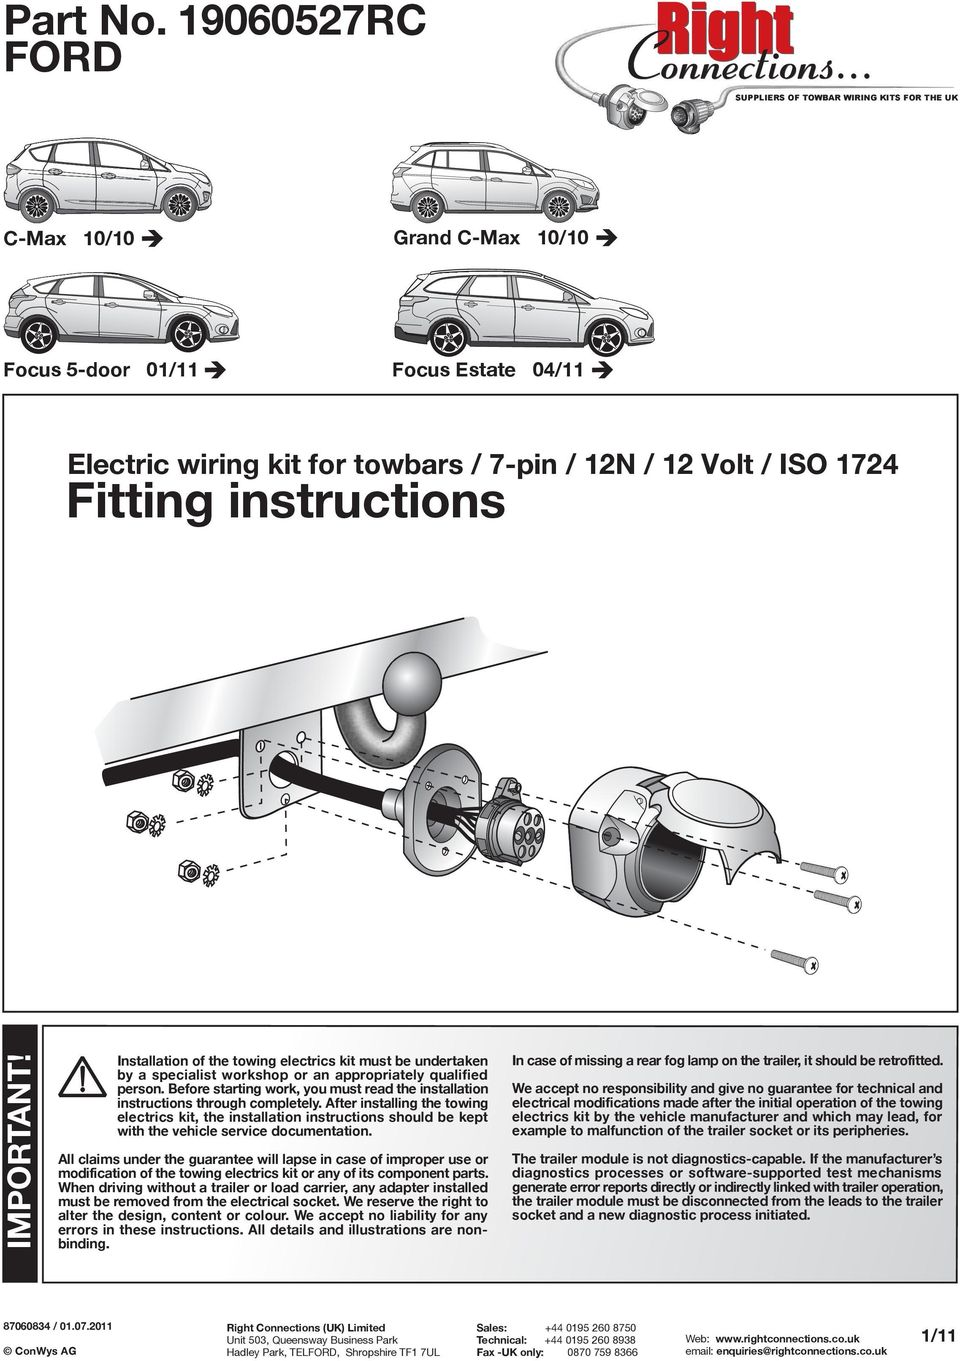 Fitting Instructions Ford Important Electric Wiring Kit For Towbars Trailer Hitch Adapter 7 Pin To 4 Installation Of The Towing Electrics Must Be Undertaken By A Specialist Workshop